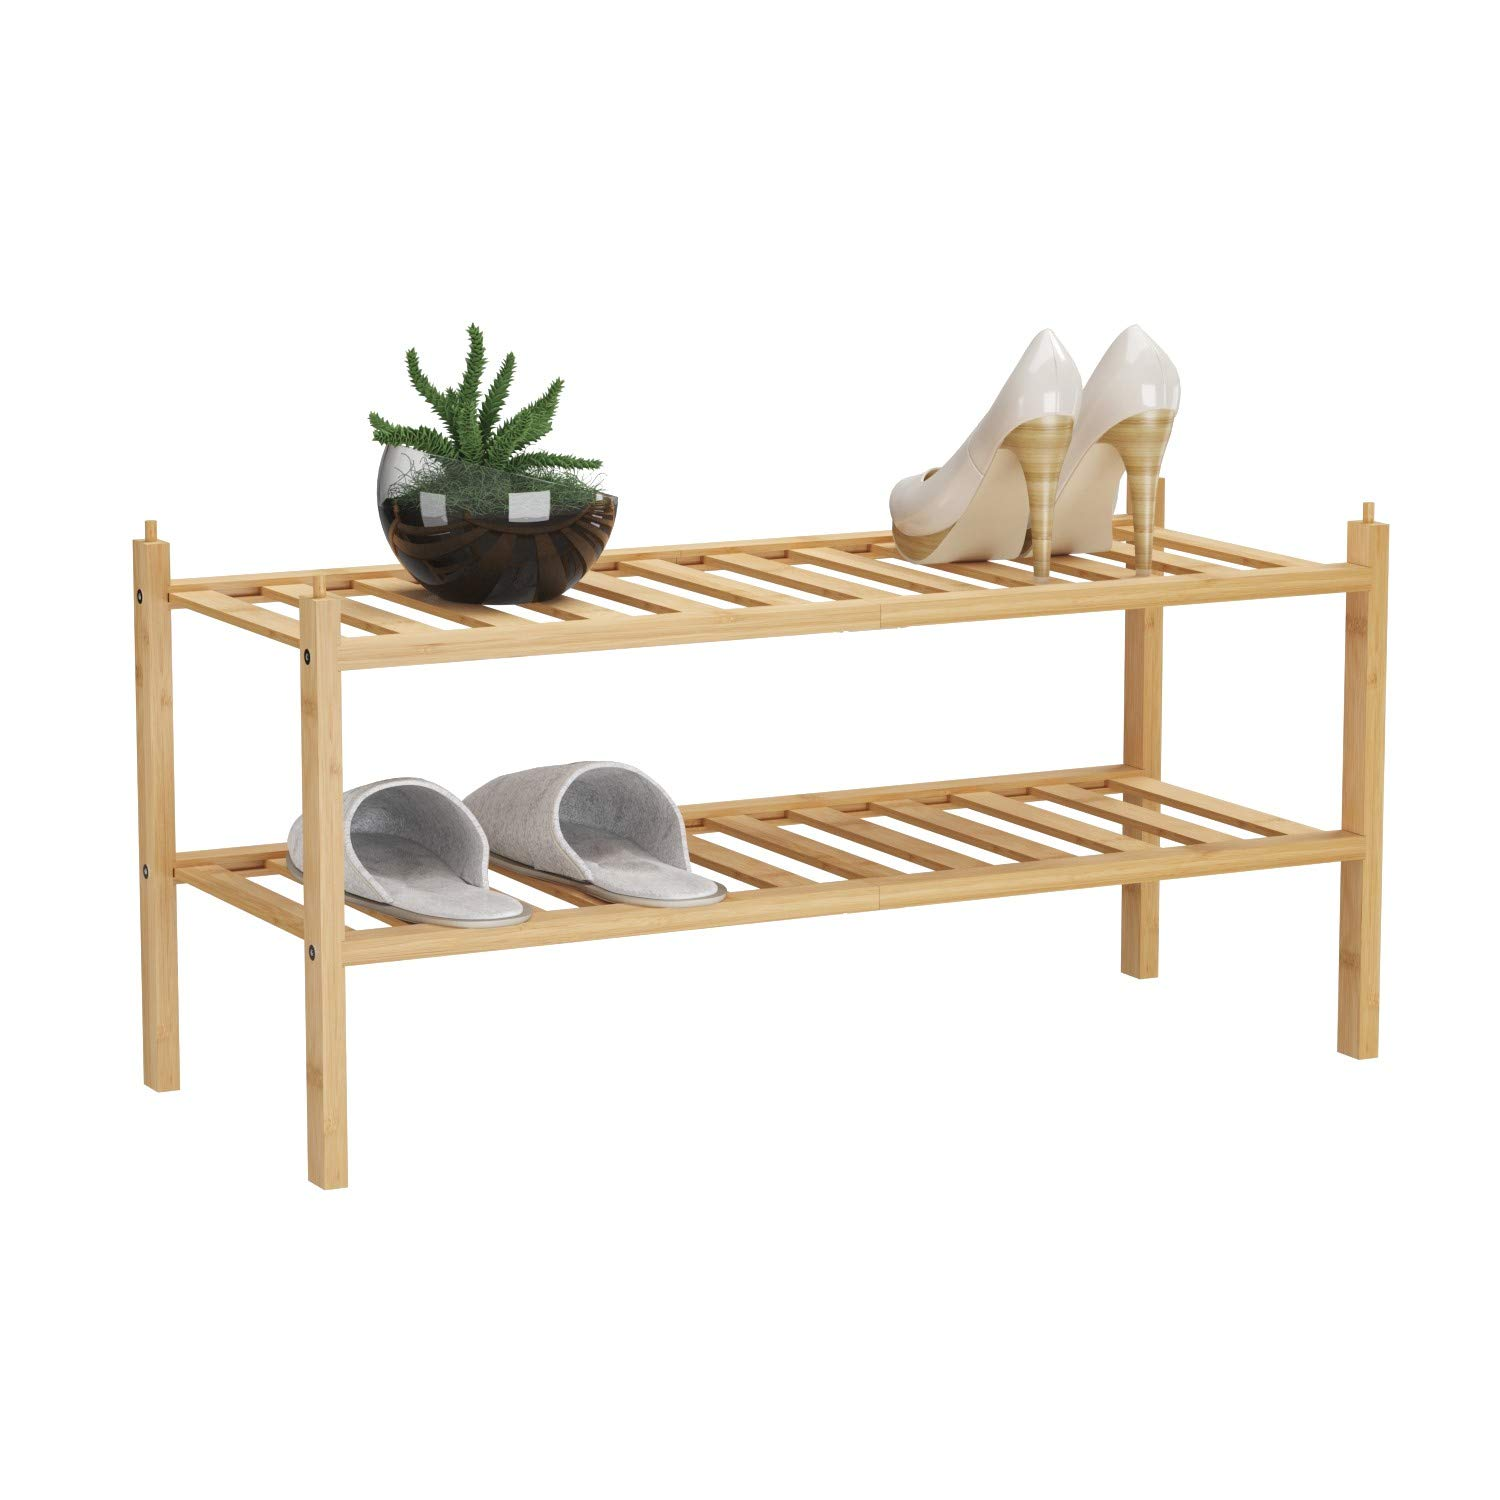 "BAMFOX 2-Tier Shoe Rack,Bamboo Stackable Shoe Storage Organizer Unit Entryway Shelf,27.2""x11""x13.2"" in Natural Color"